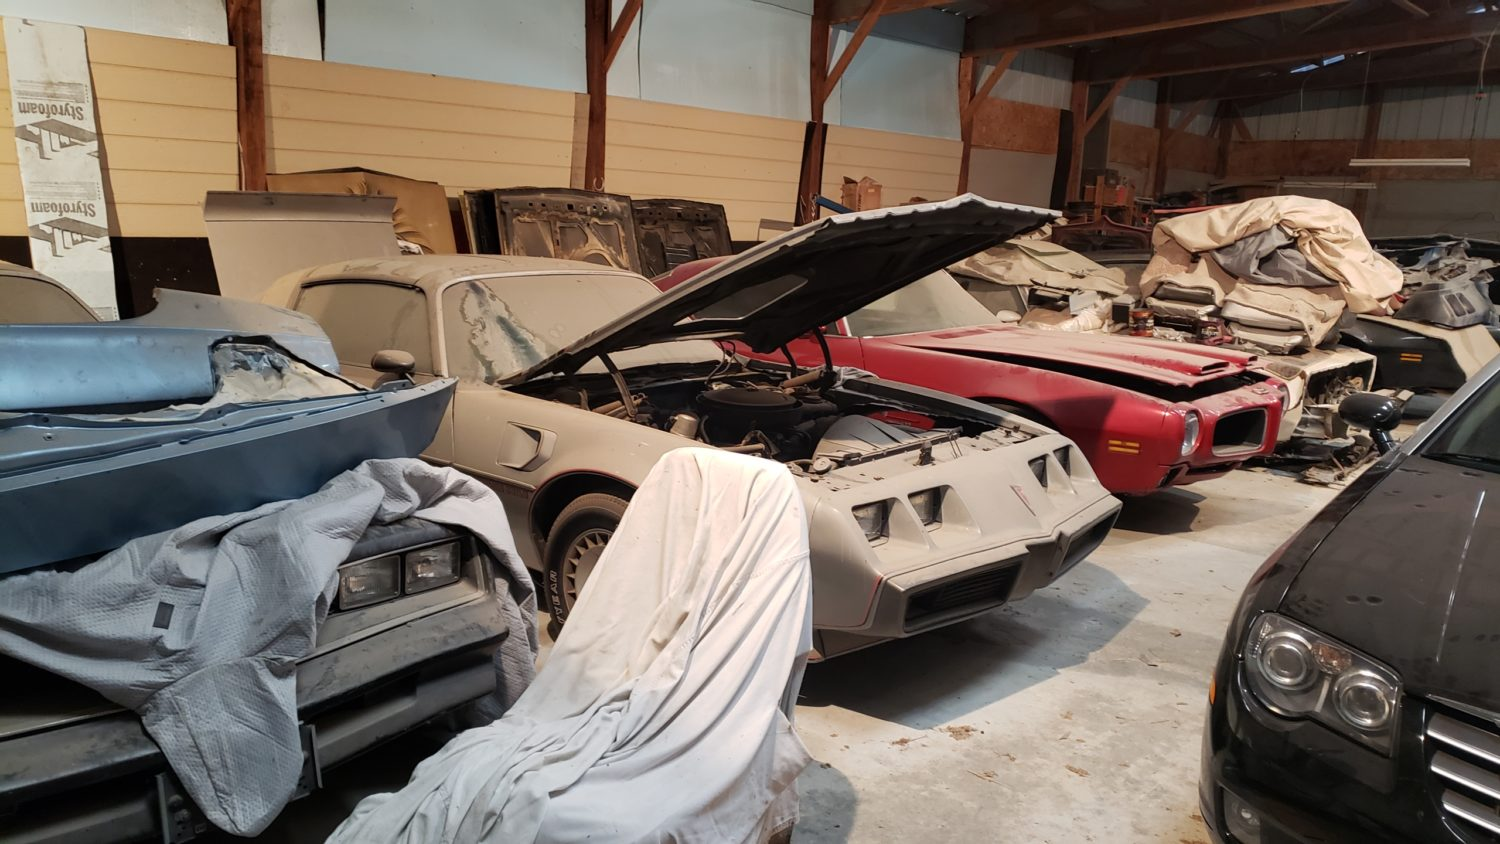 Amazing Trans Am & Pontiac Cars and Parts Hoard! The Kansas Collection - image 13